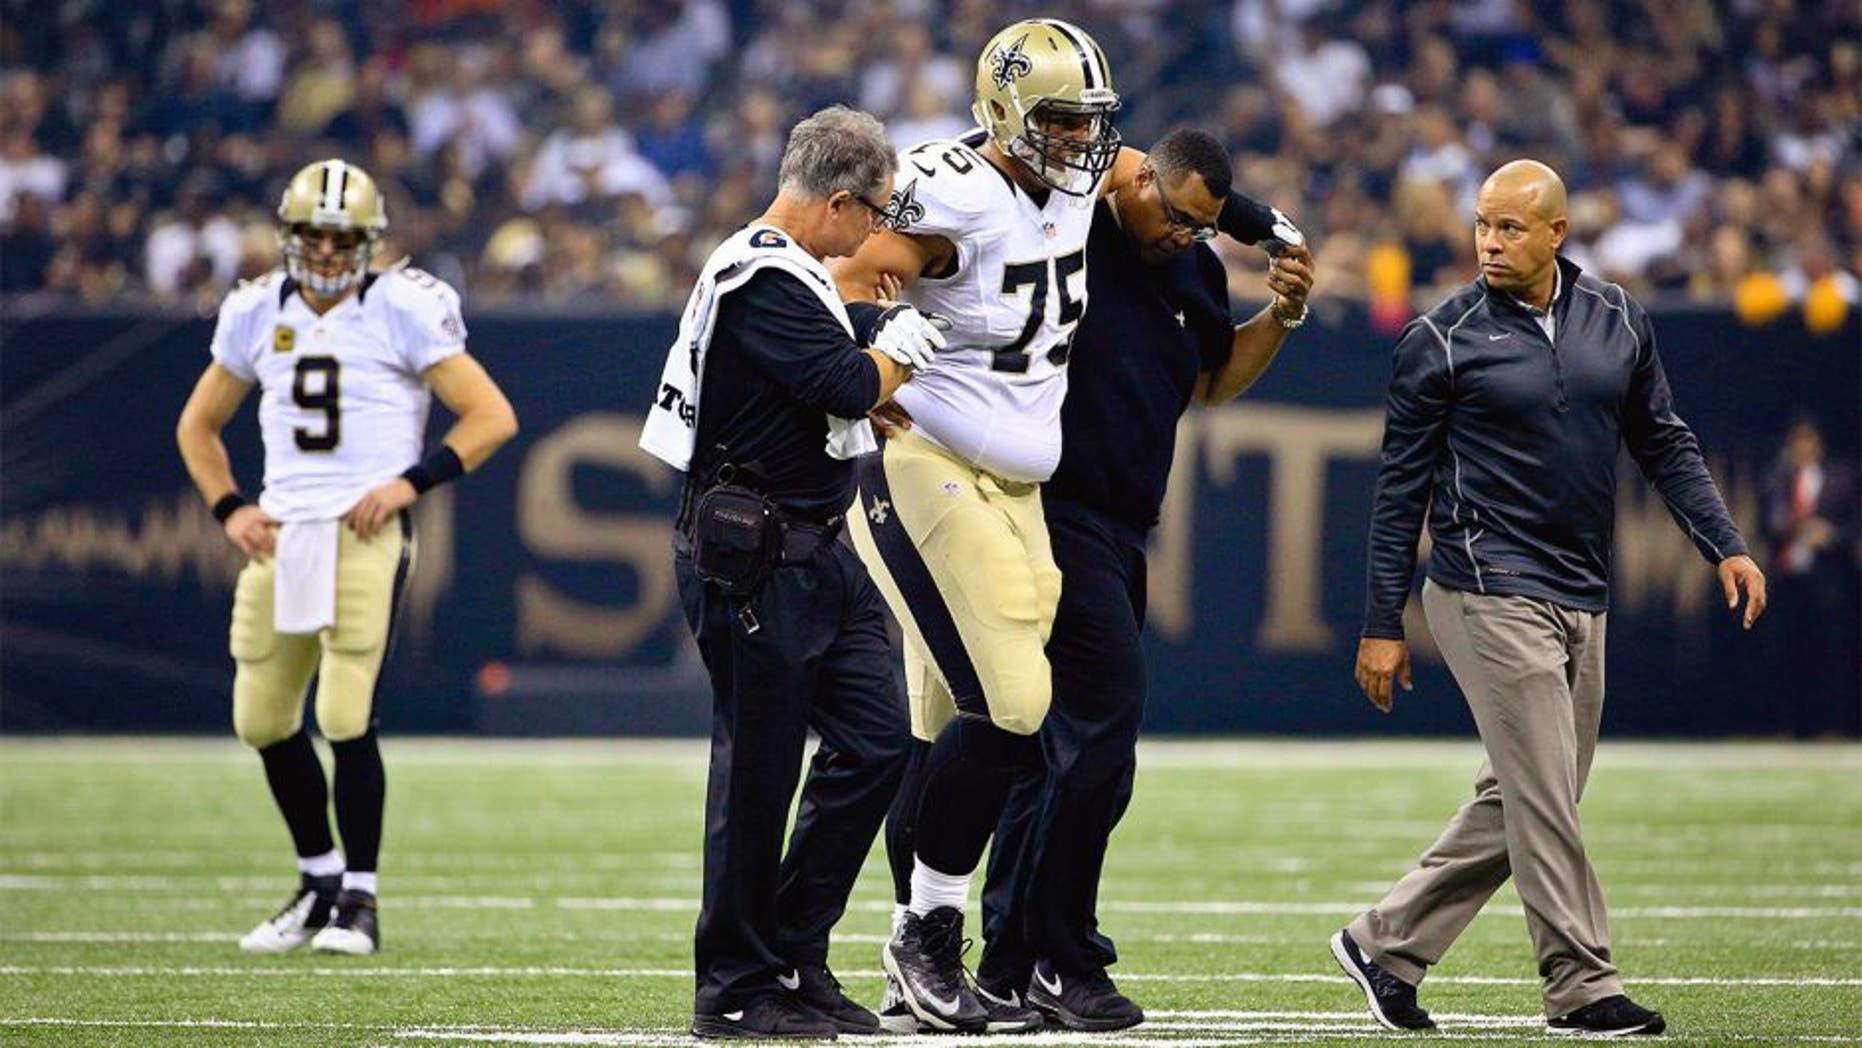 Oct 15, 2015; New Orleans, LA, USA; New Orleans Saints offensive tackle Andrus Peat (75) is helped off the field during the first quarter of a game against the Atlanta Falcons at the Mercedes-Benz Superdome. Mandatory Credit: Derick E. Hingle-USA TODAY Sports